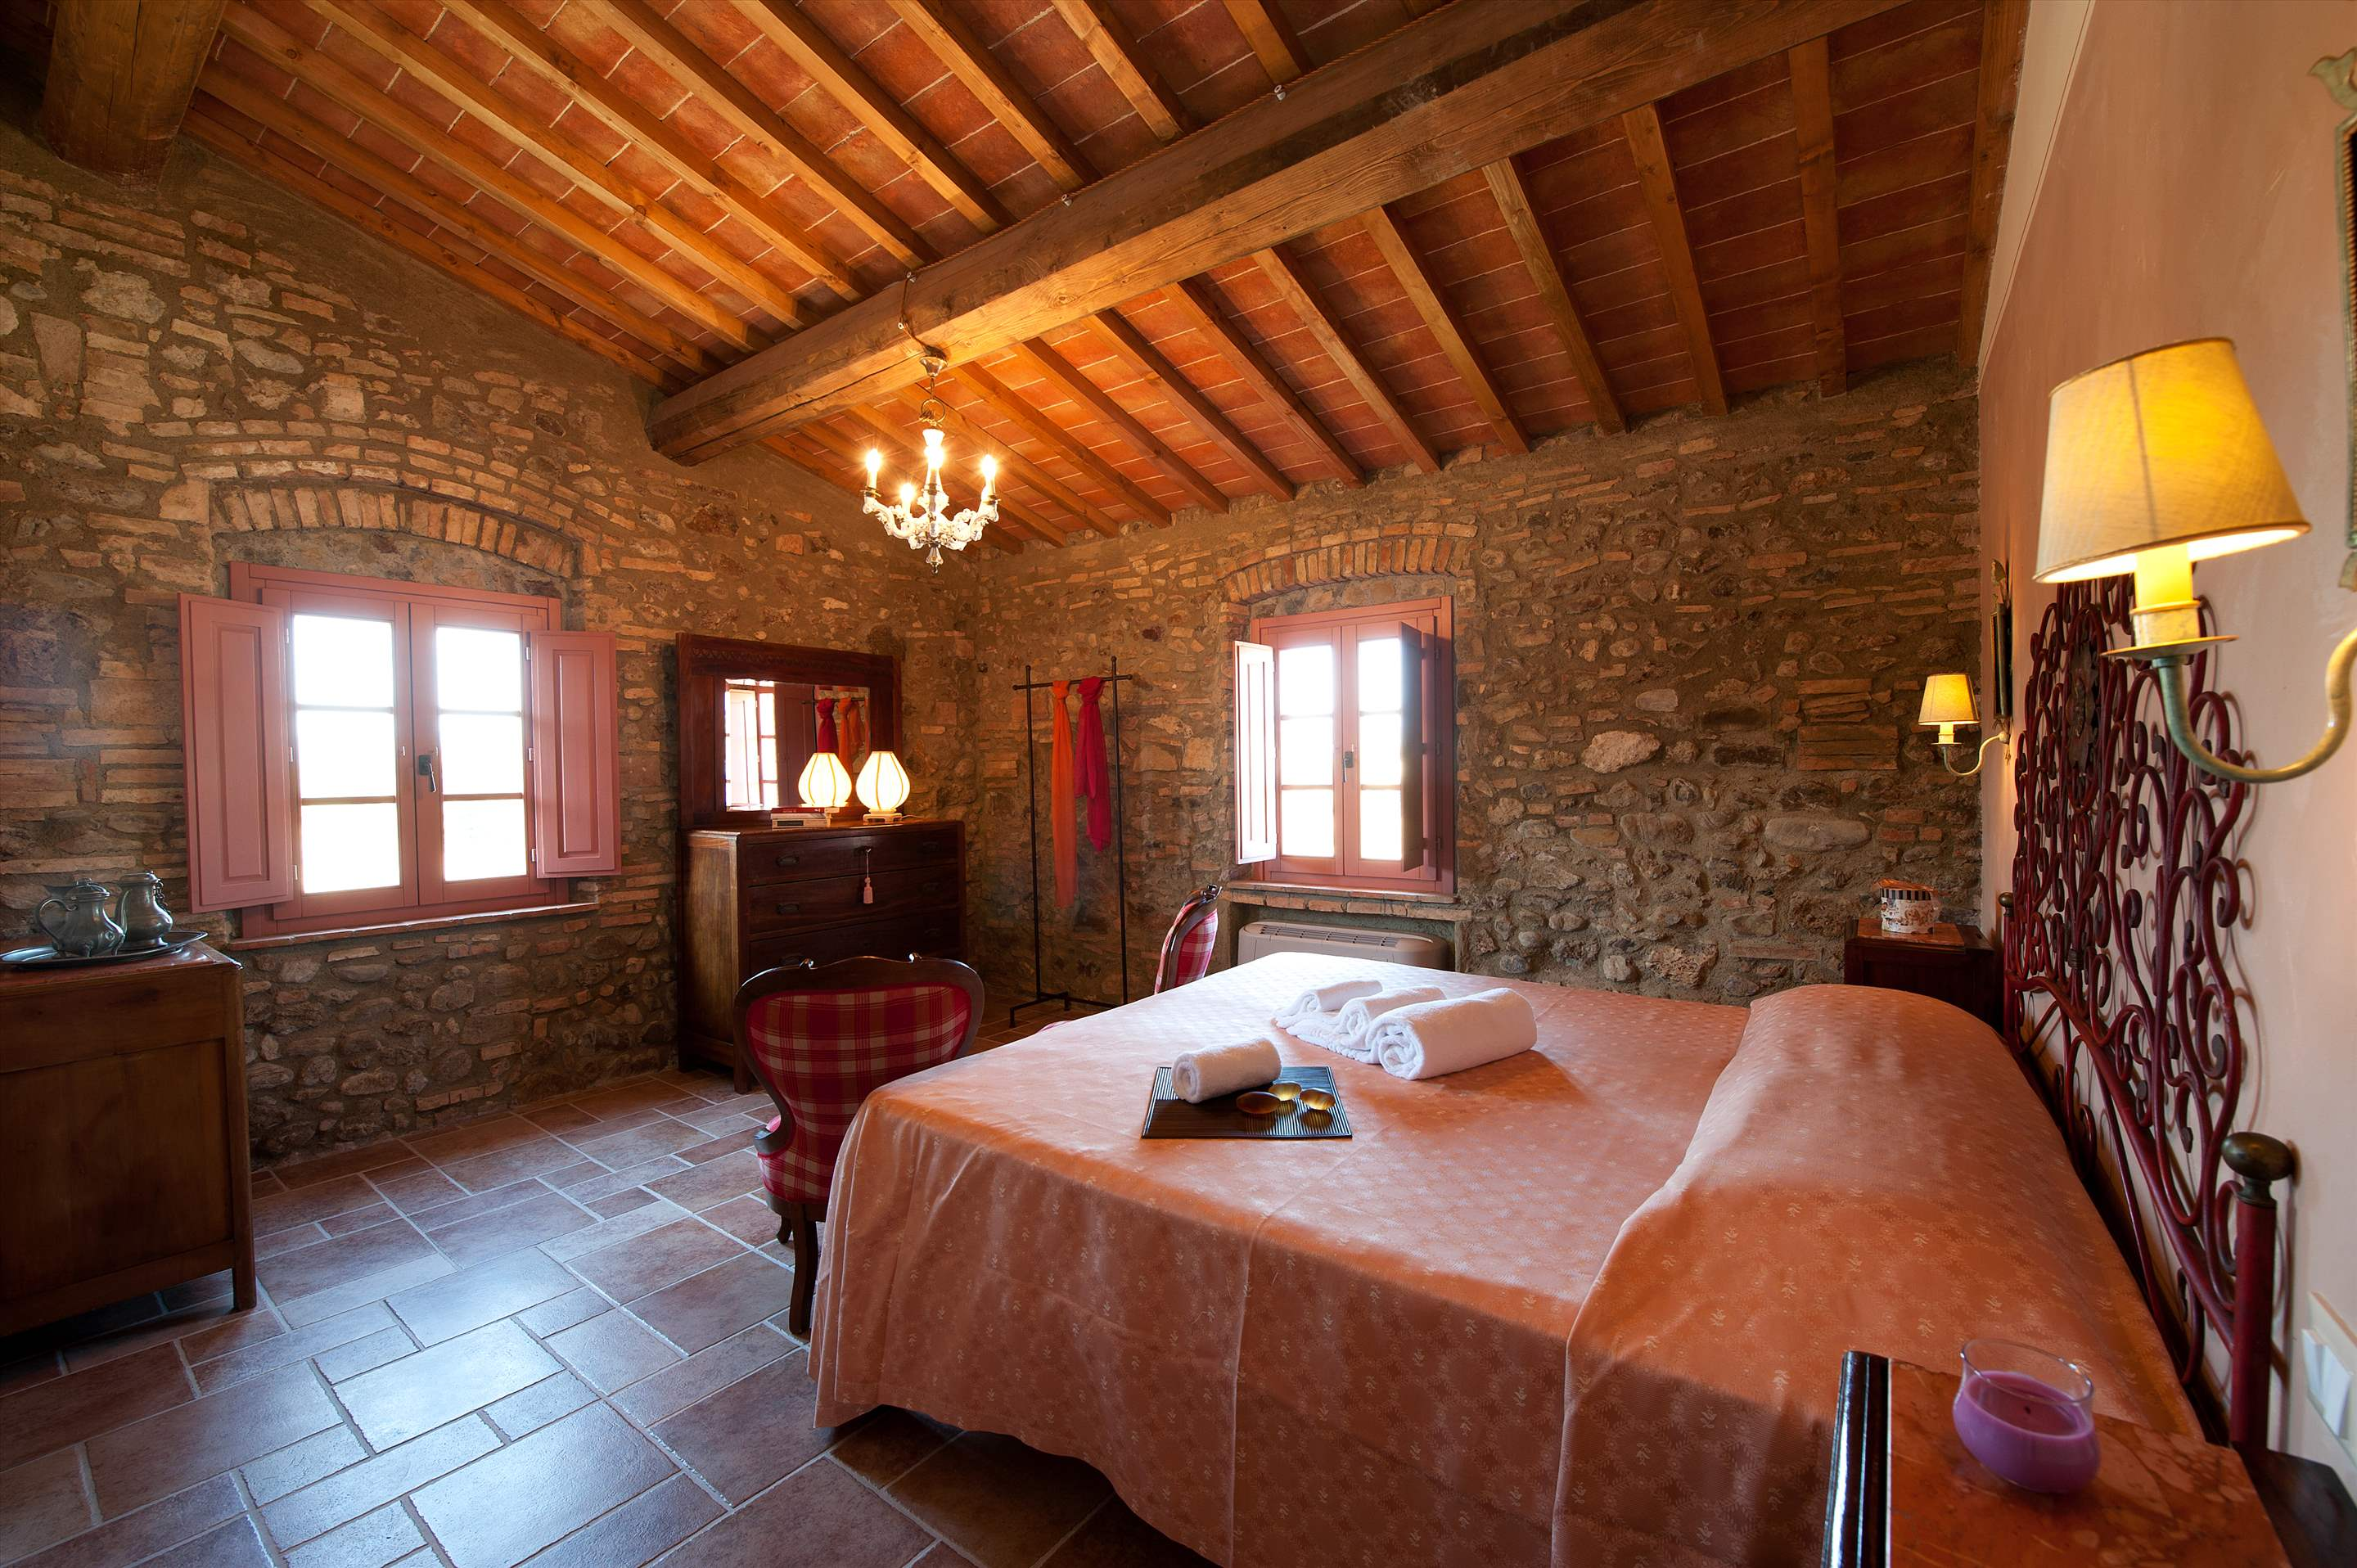 Podere I Gotti, 5 bedroom villa in Tuscany Coast, Tuscany Photo #16